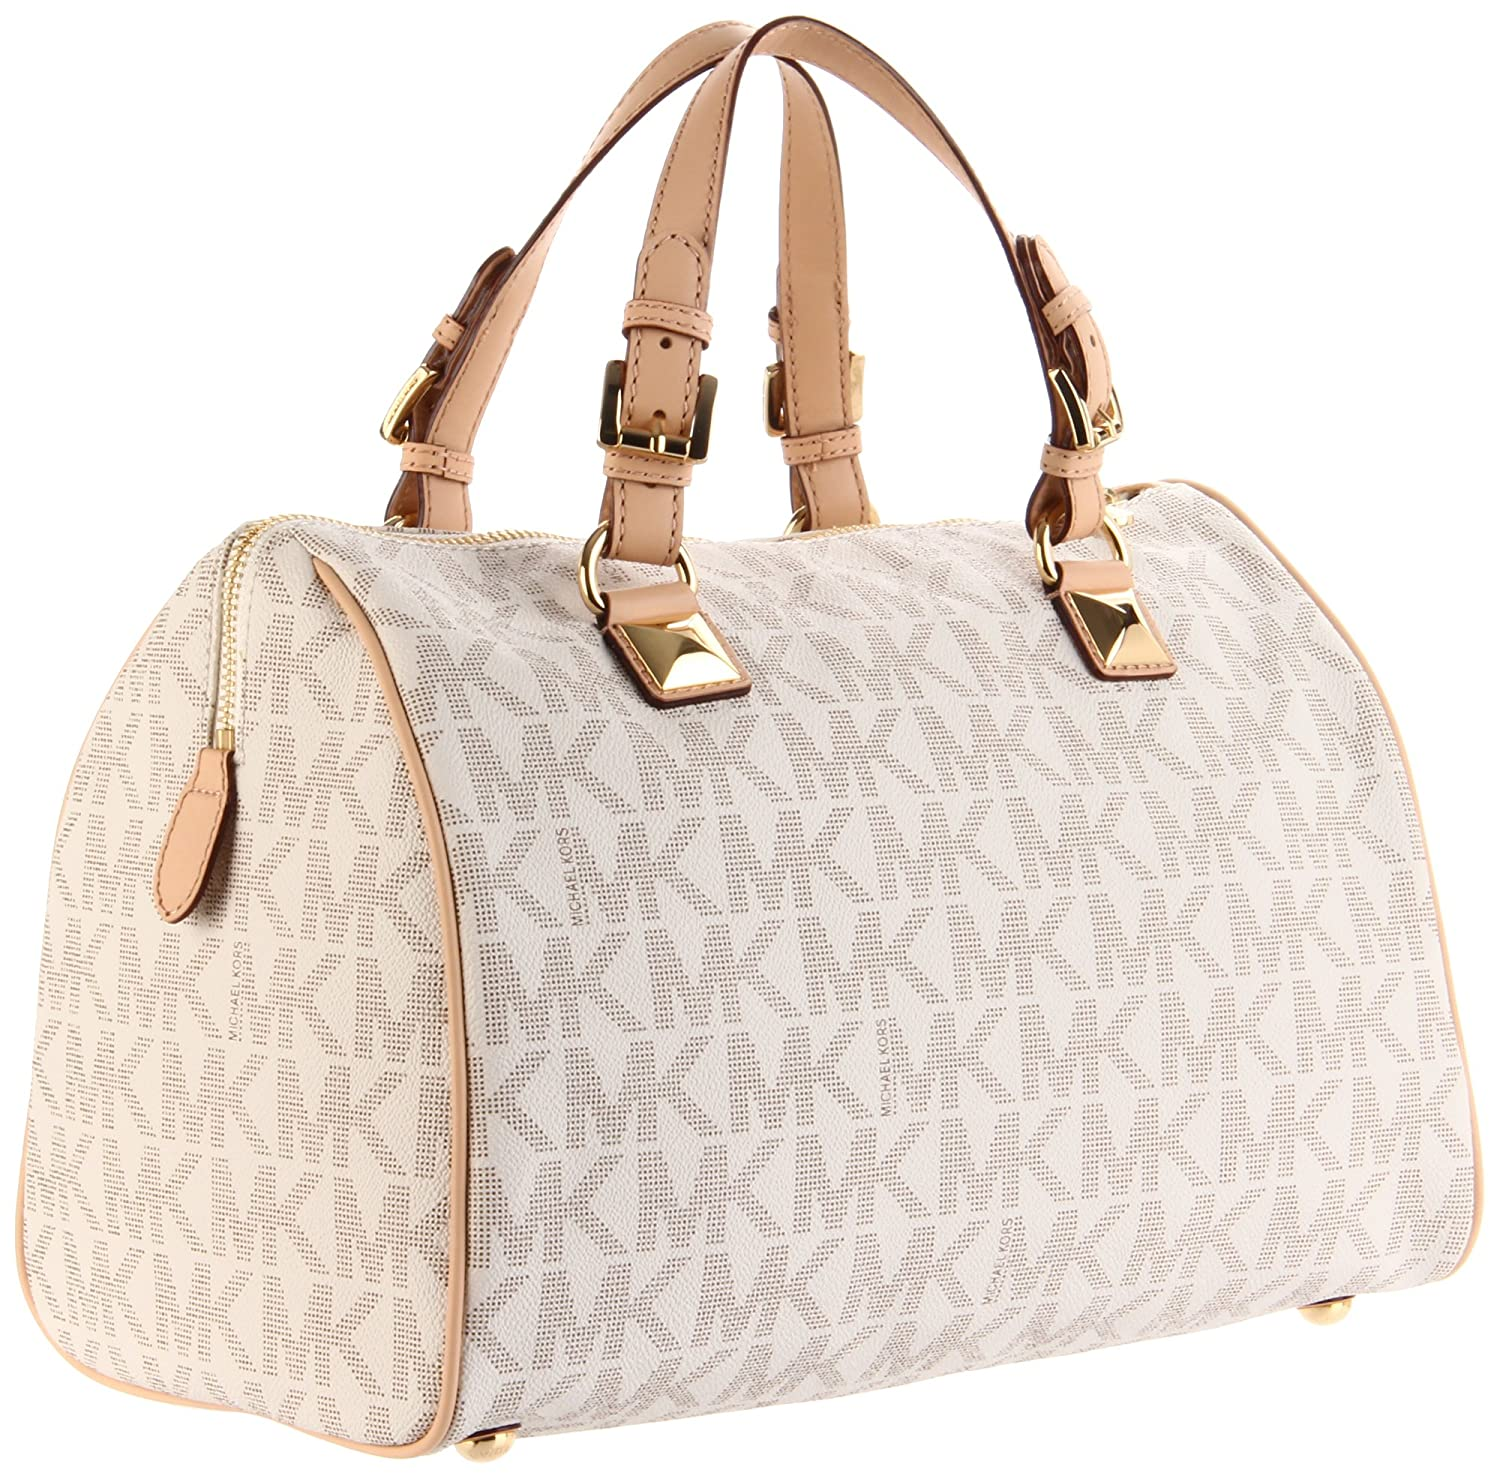 c6540568e455b1 Amazon.com: MICHAEL Michael Kors Logo Grayson Large Satchel,Vanilla,one  size: Michael Kors: Clothing